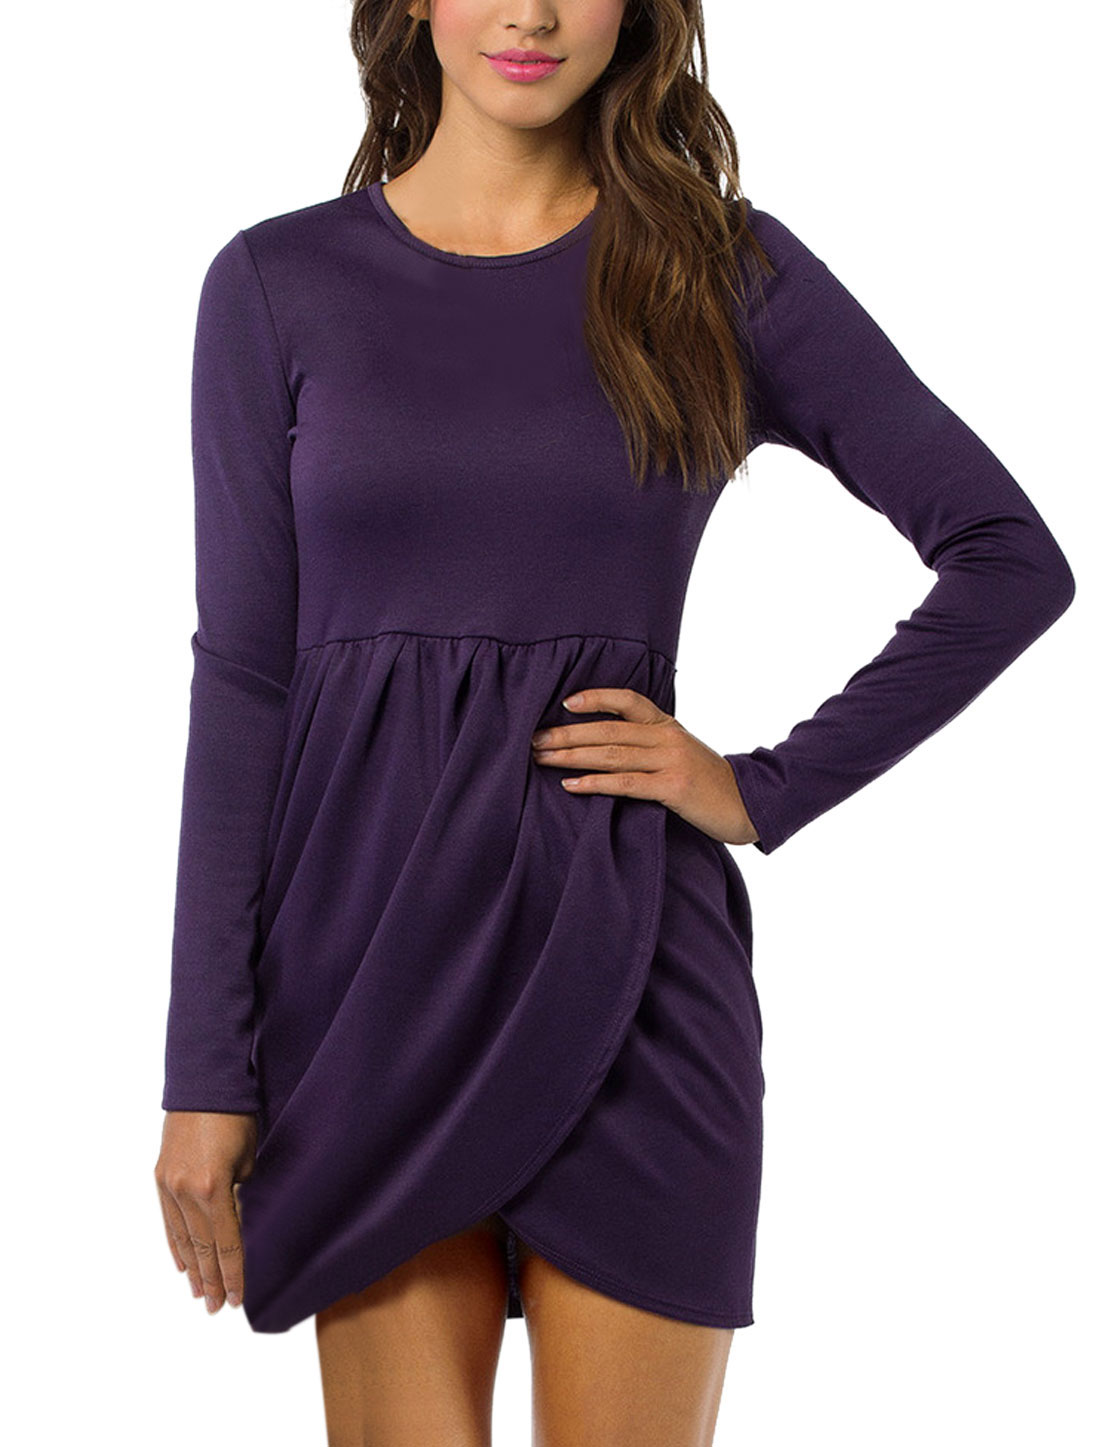 Lady Stretchy Waist Irregular Cross Hem Short Dress Dark Purple M